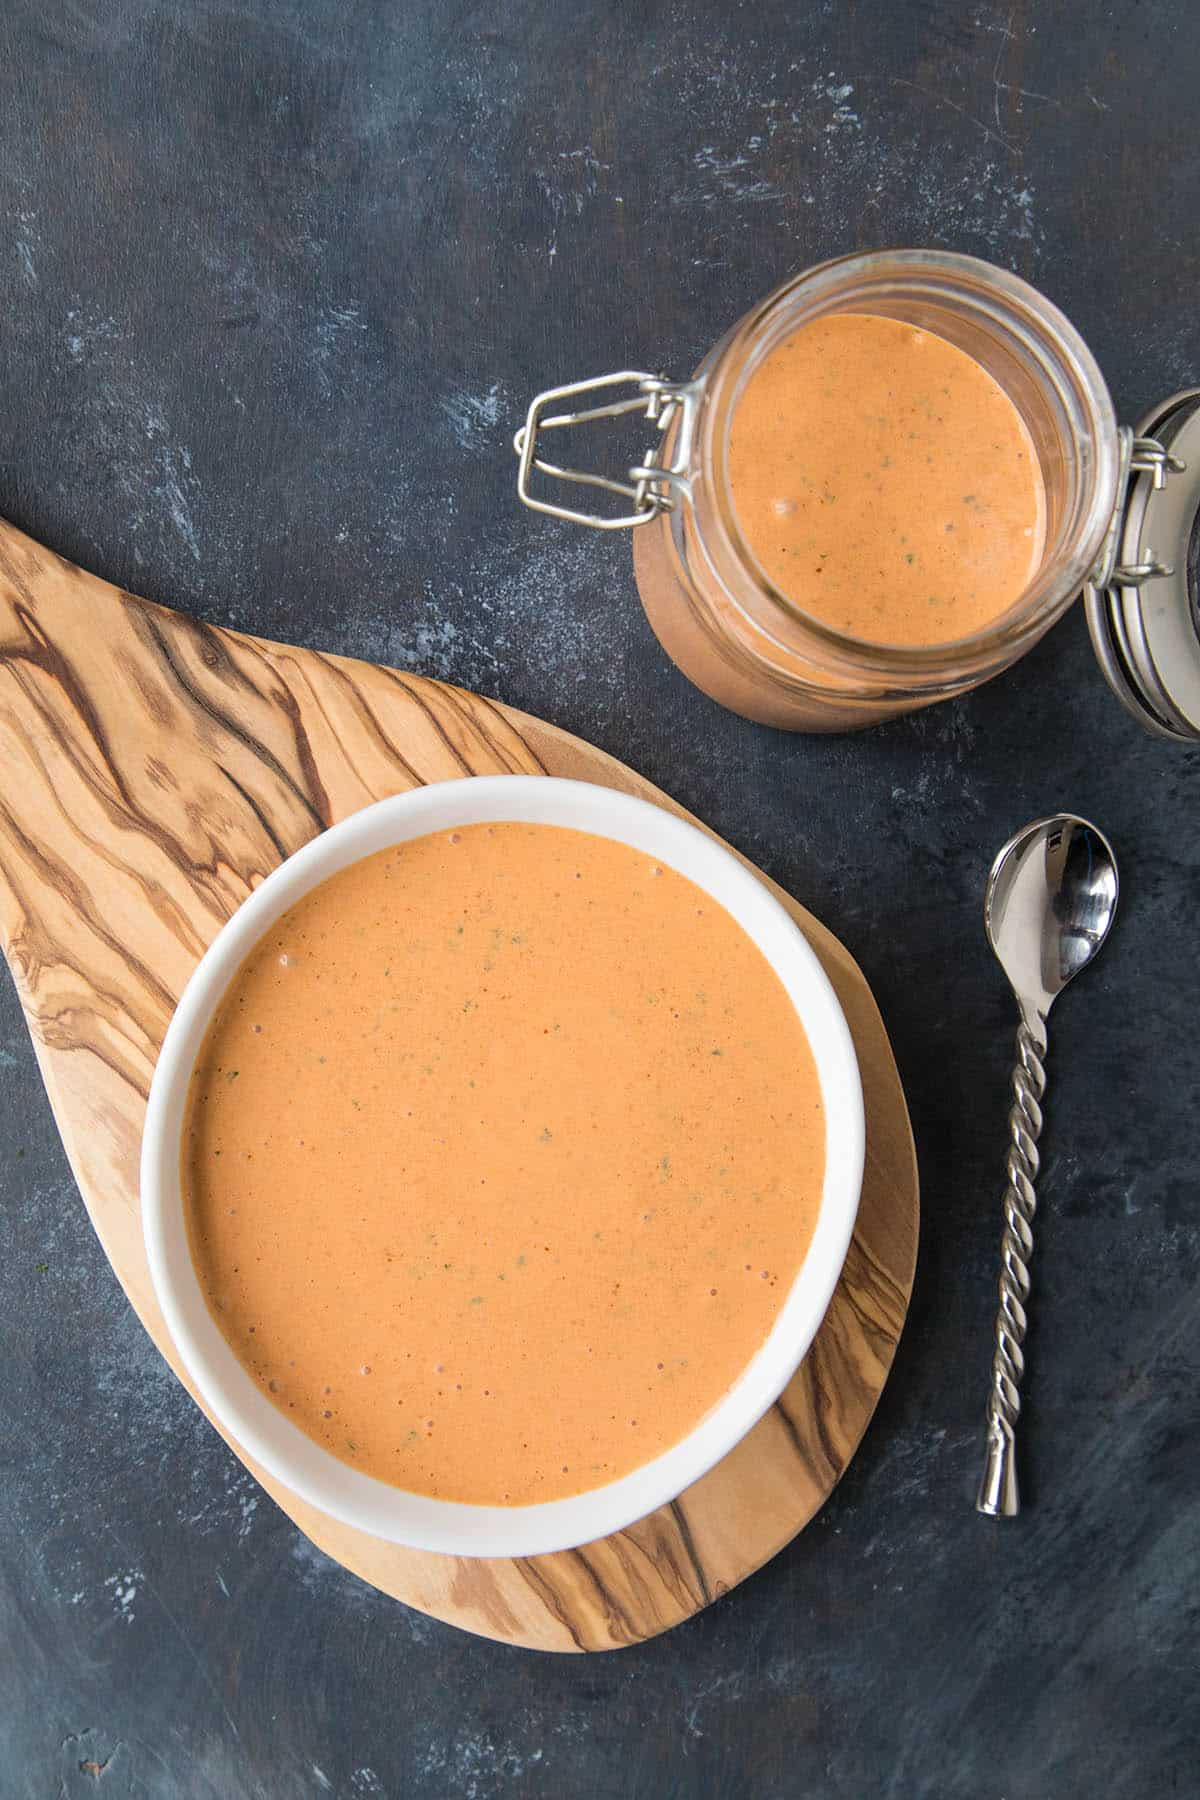 Chipotle Sauce Recipe - Use it as a finishing sauce or as a dip or condiment.